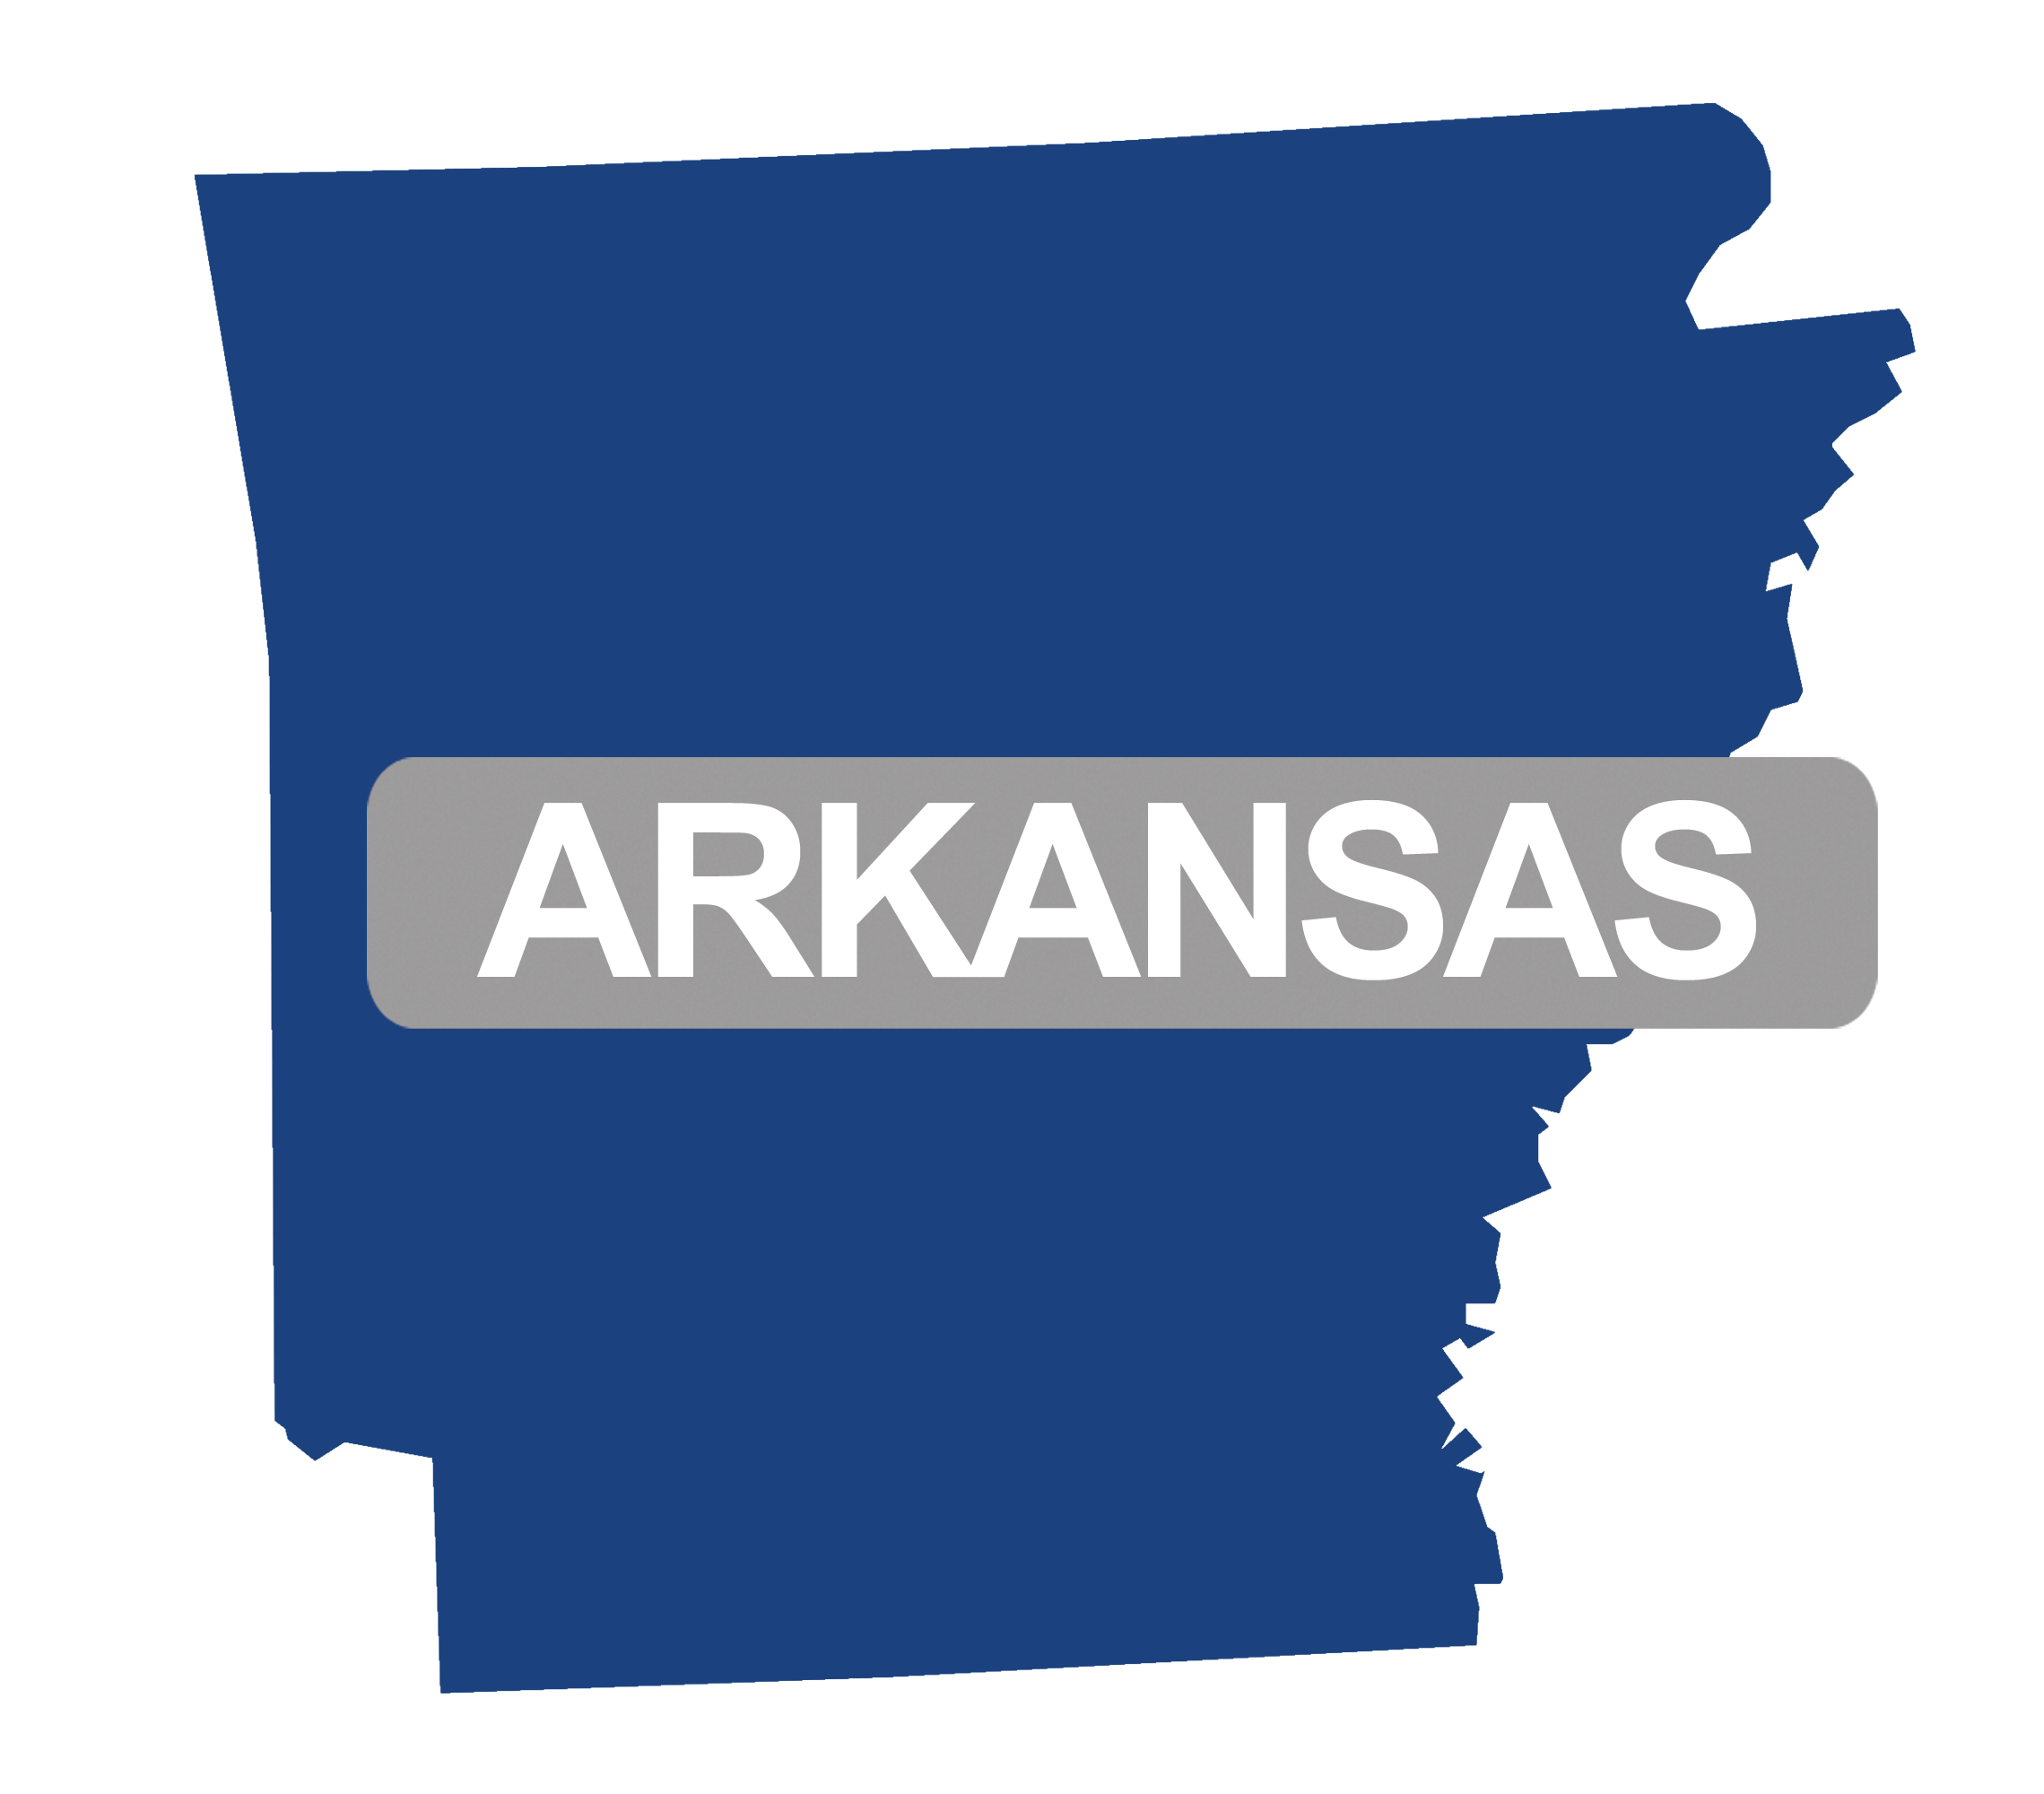 Arkansas Electrical Continuing Education for Journeyman, Master Electricians, and Electrical Contractors